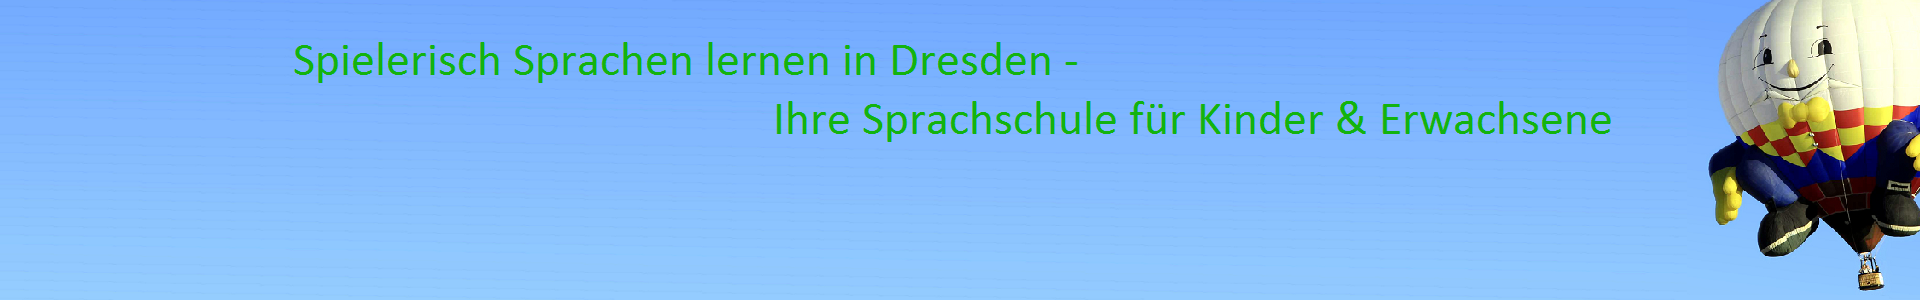 Headerbild_Sprachschule_Dresden_Double-Loop19.png